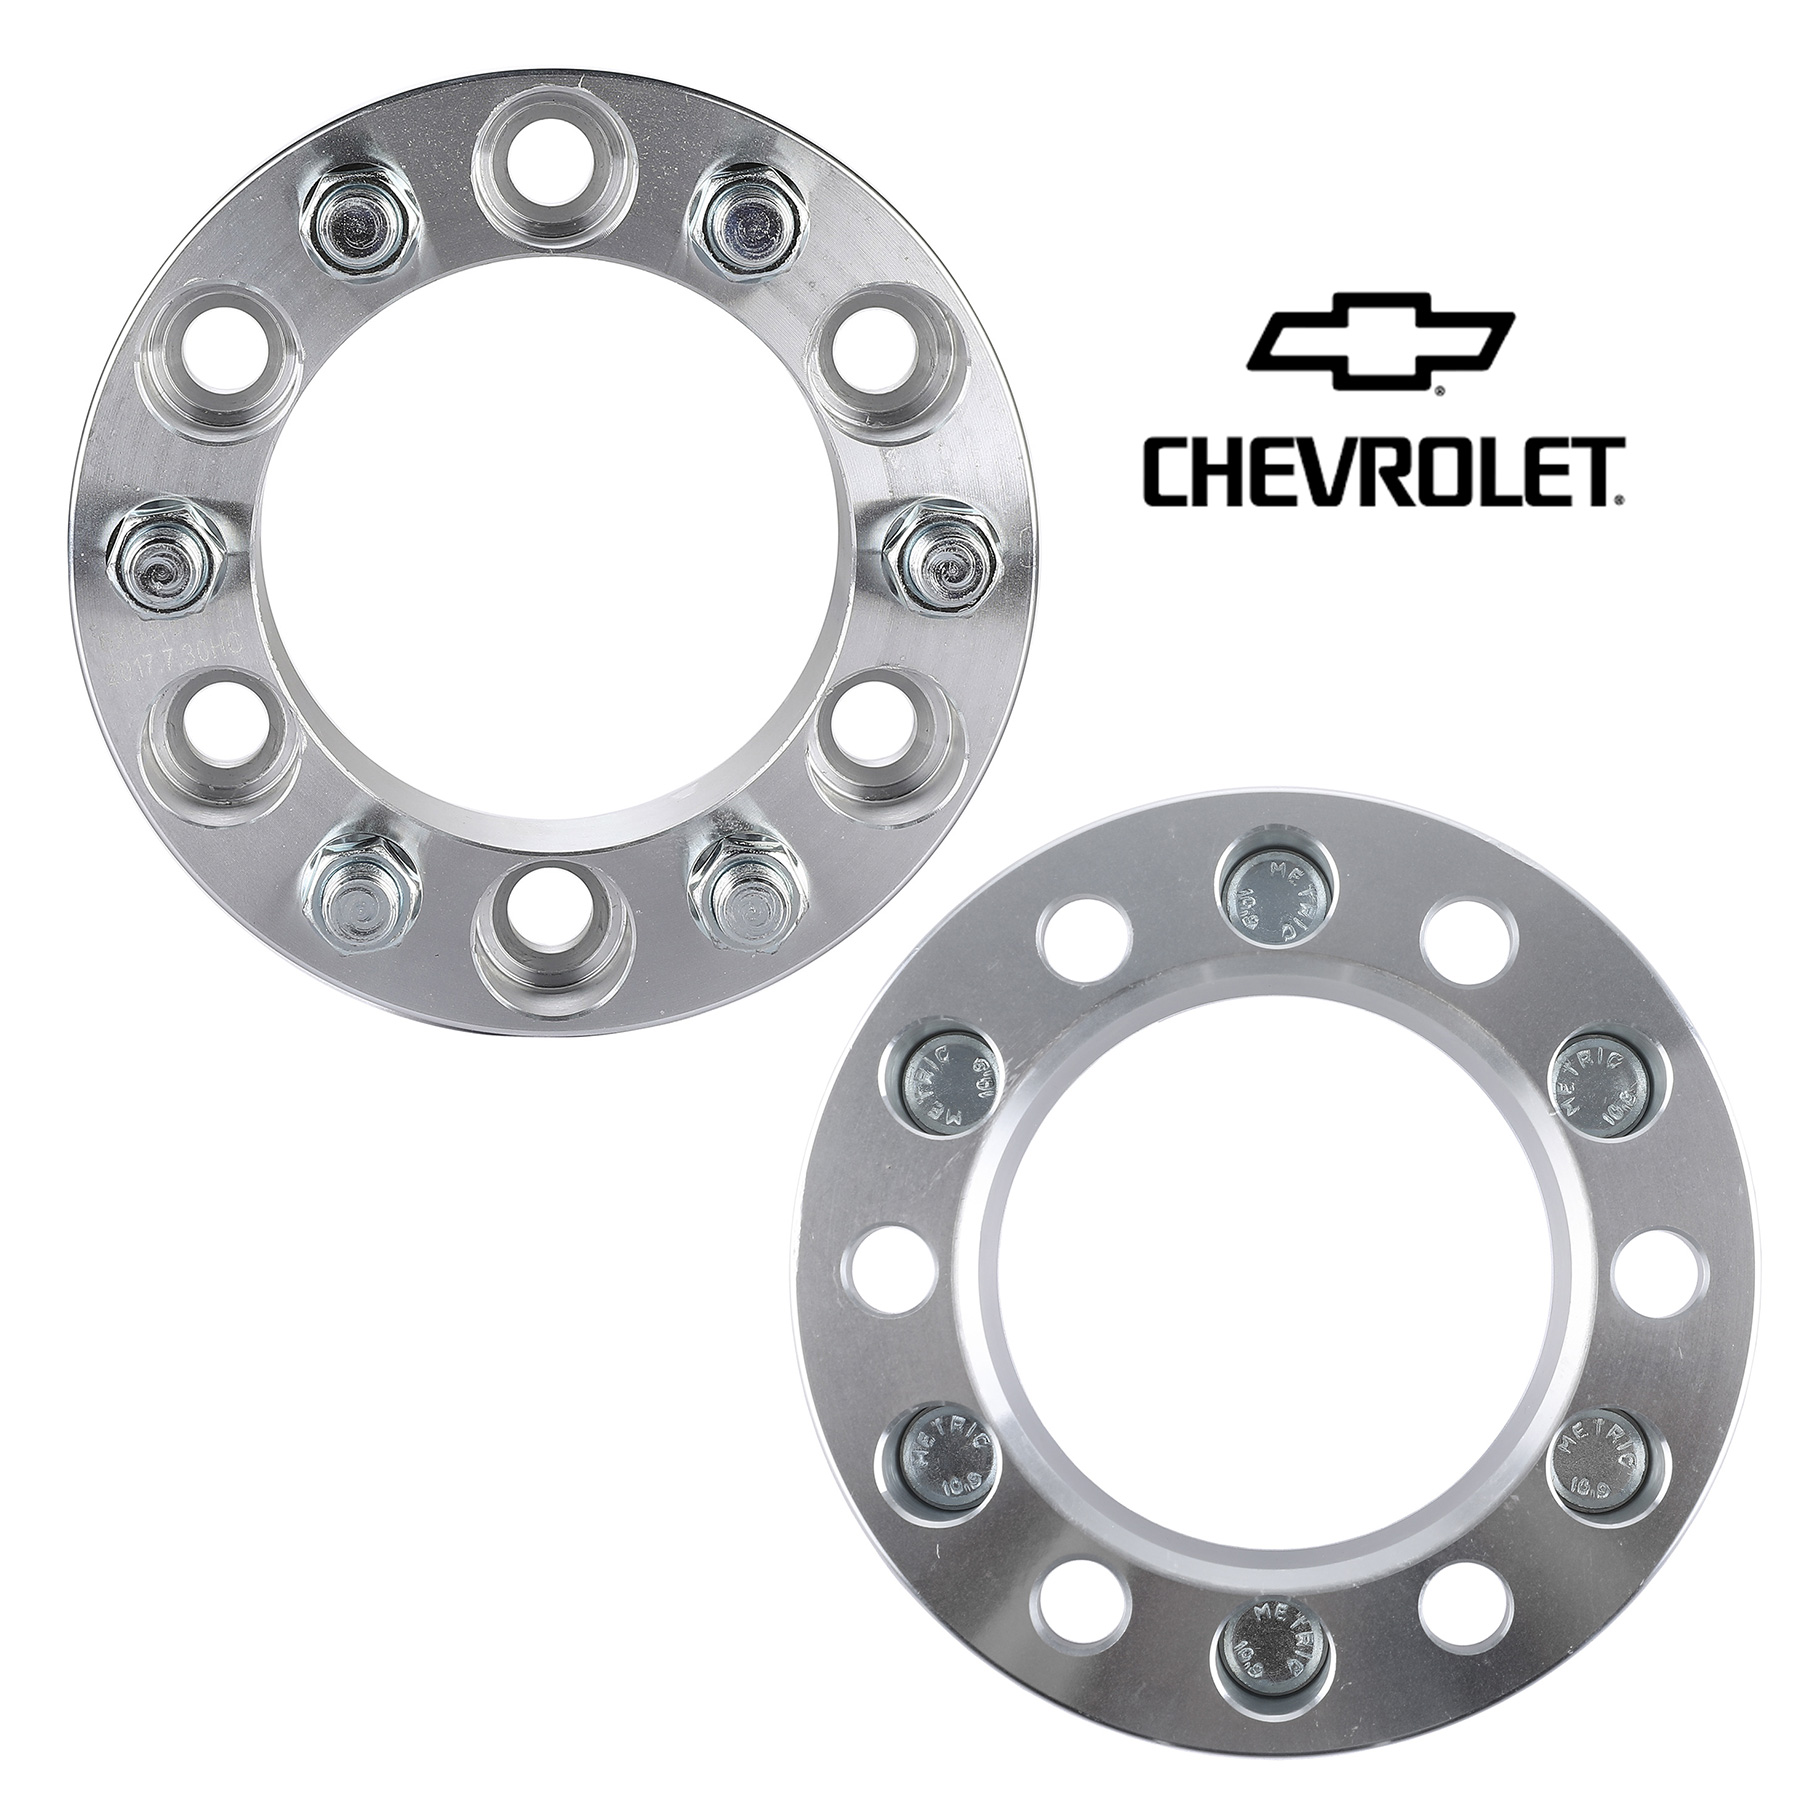 Wheel Spacers Adapters fits 8 lug Chevy and GMC 2 inch SAME DAY SHIIPING